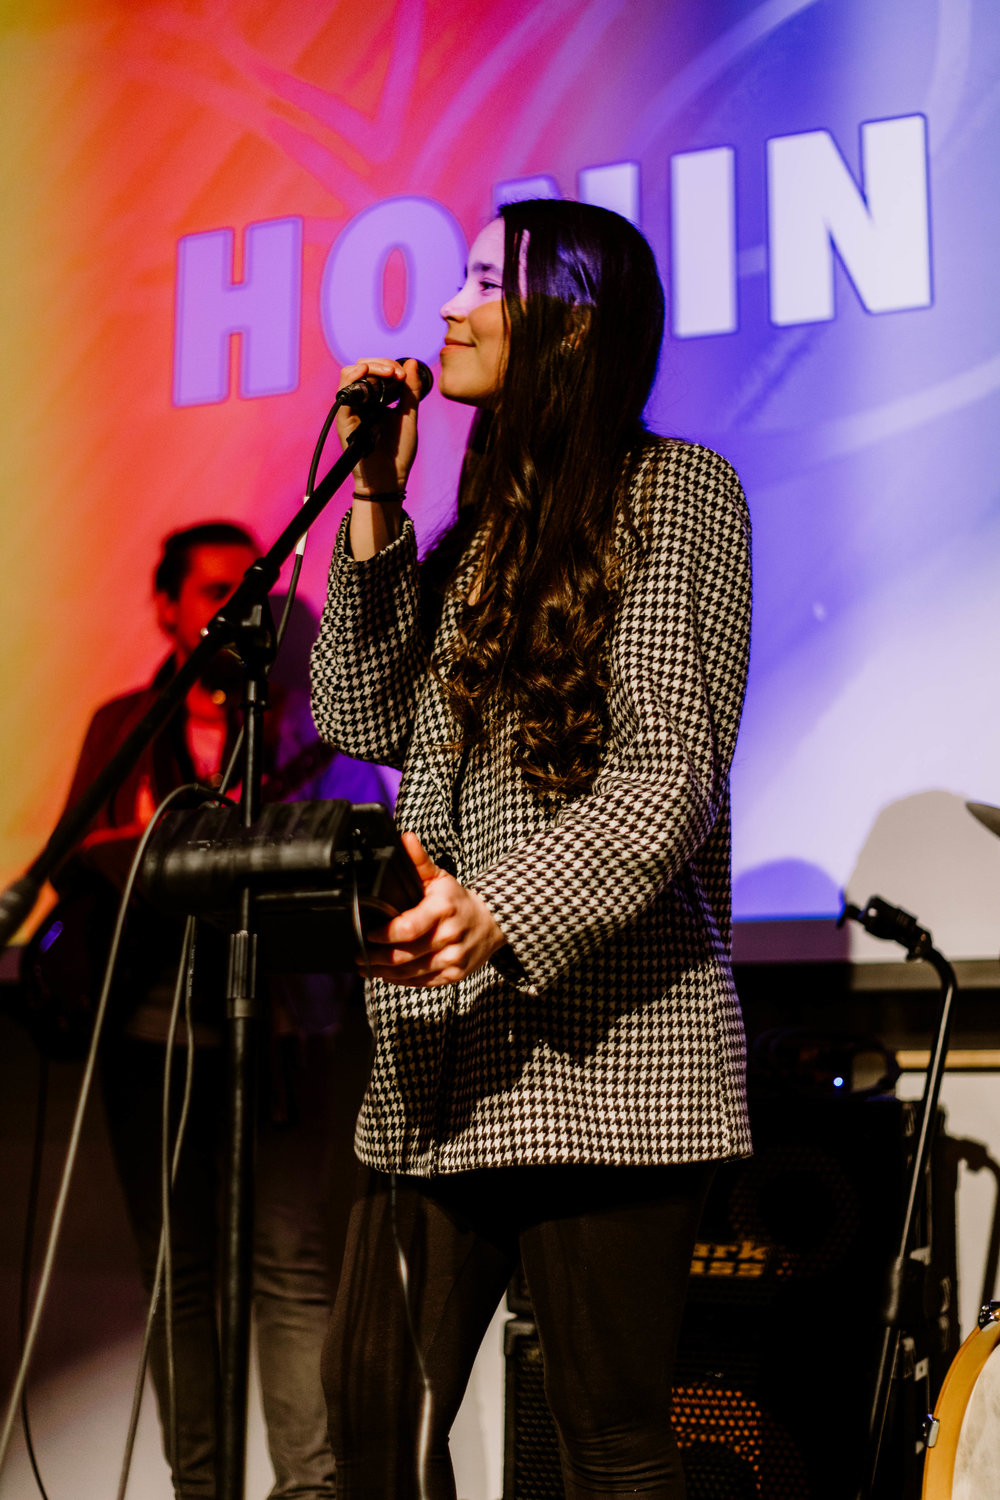 HONIN performs during the 3rd Annual DAM Awards pre-show.